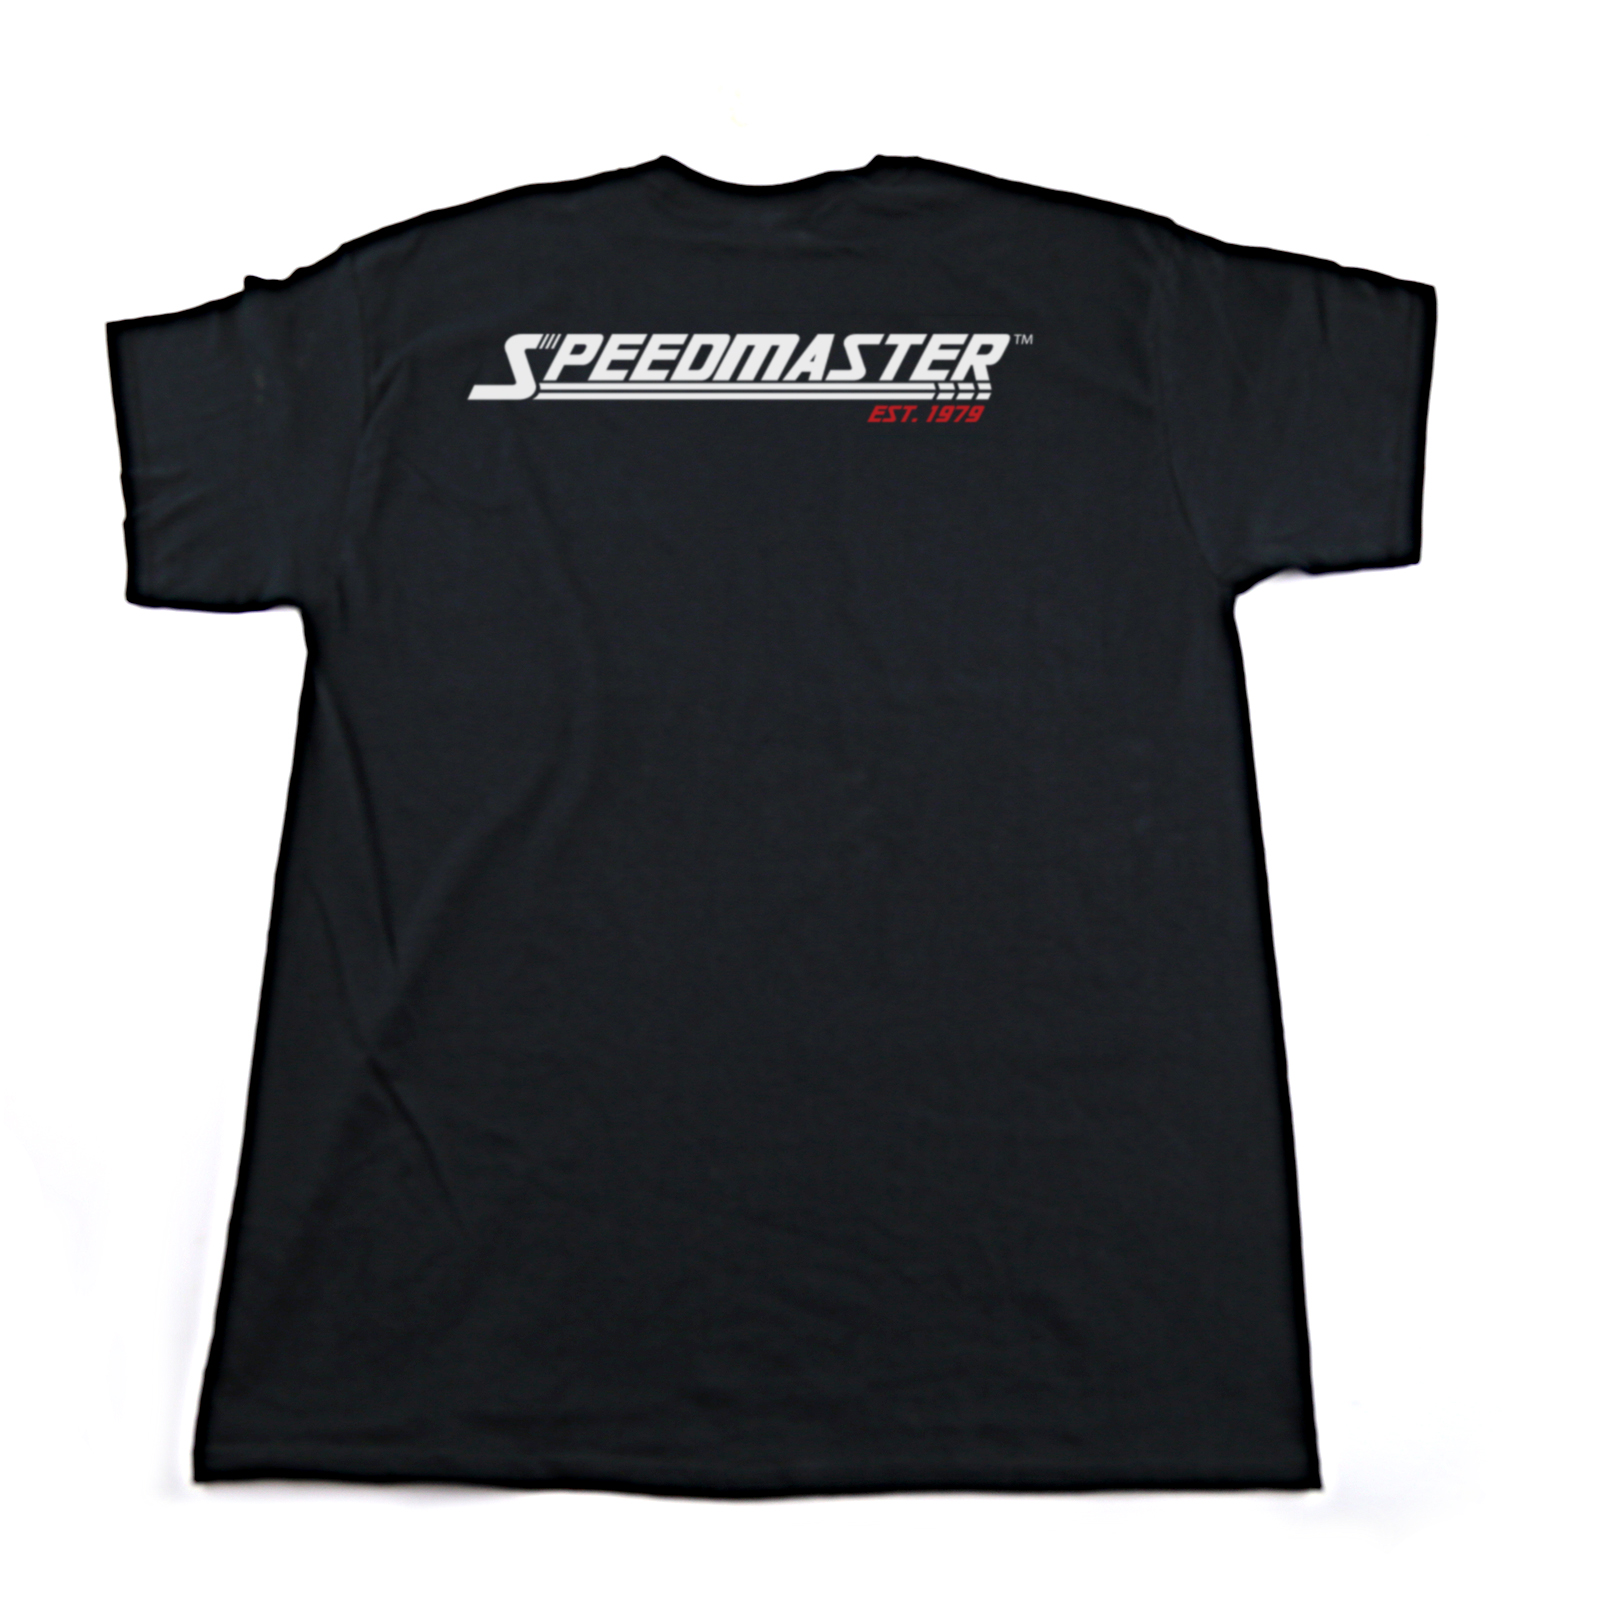 Speedmaster Black T-Shirt - XX-Large XXL